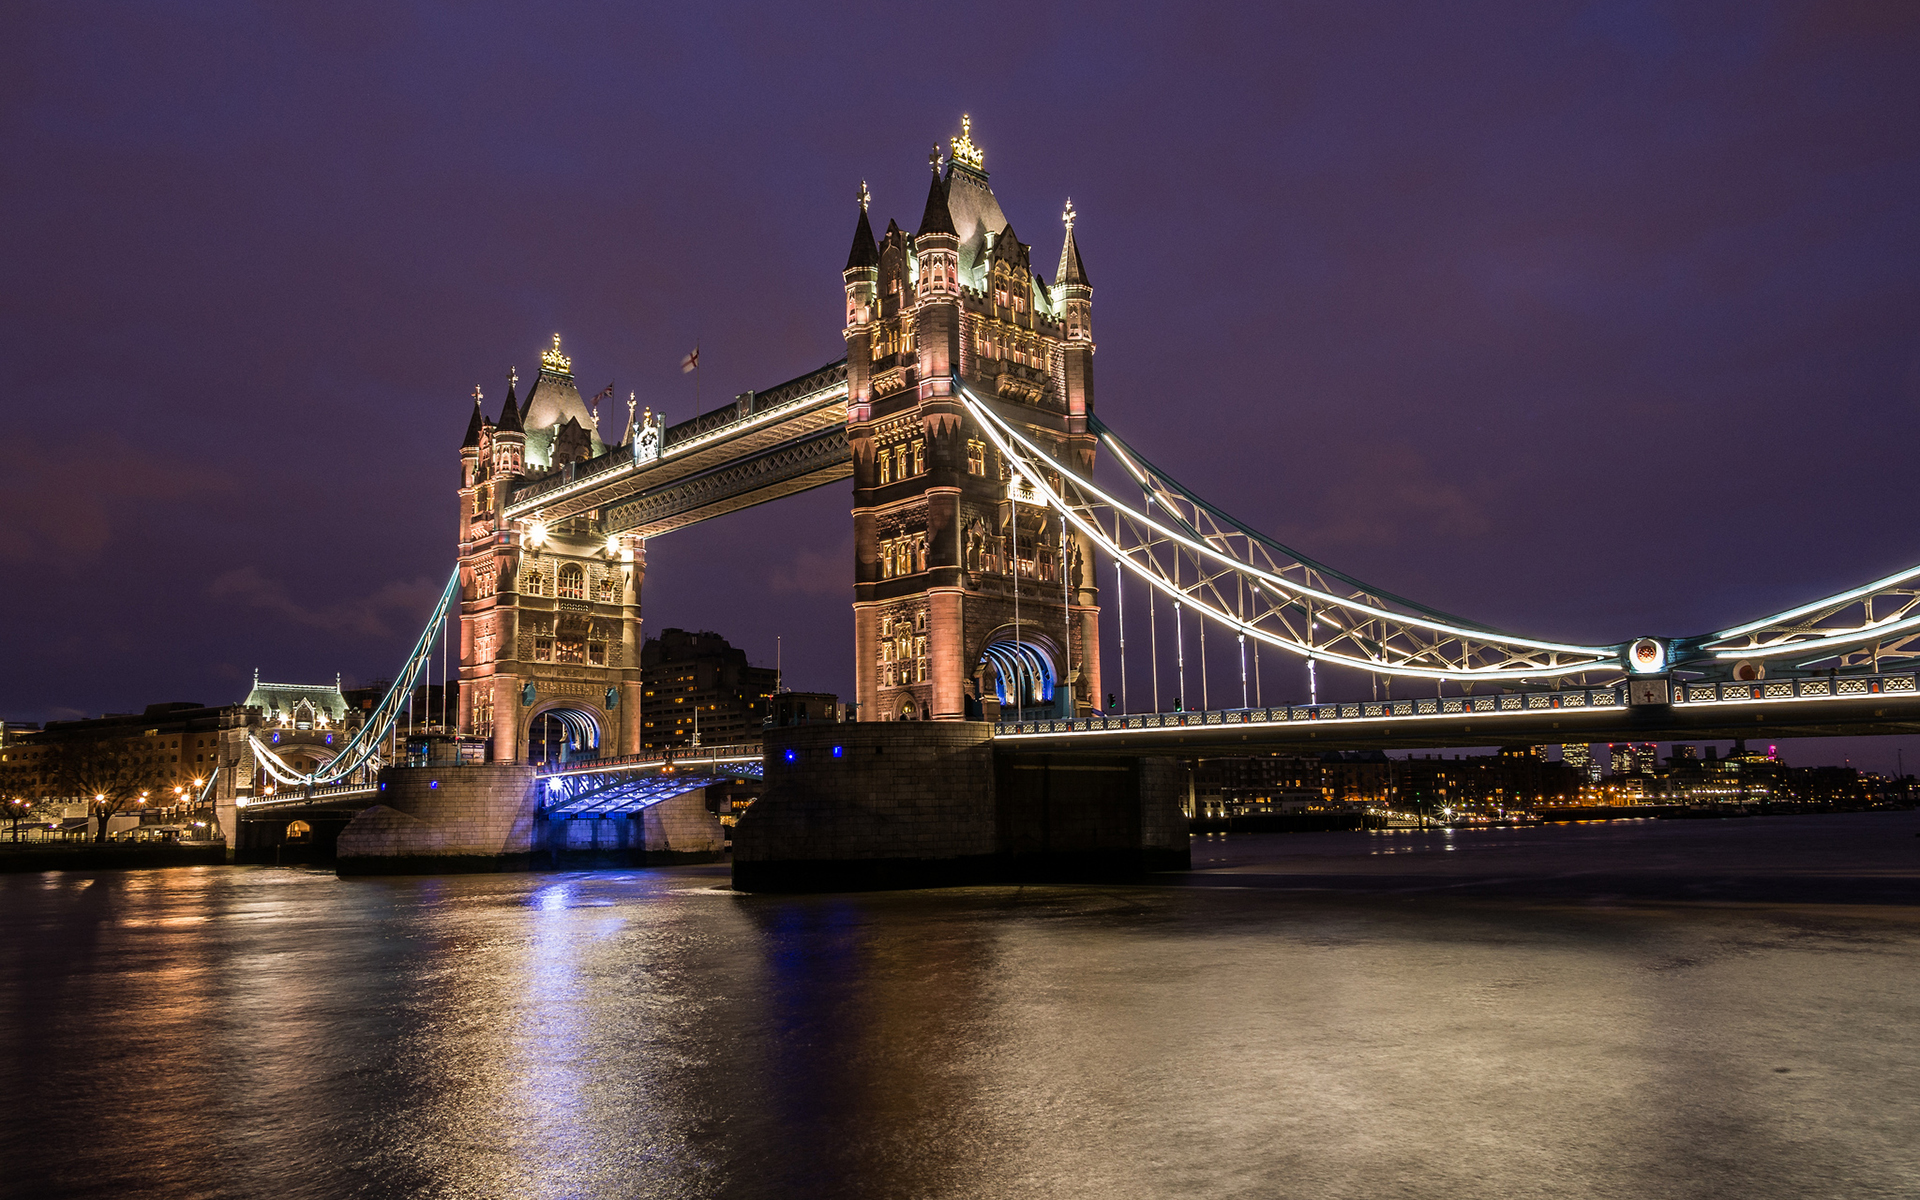 Tower Bridge London Bridge River Night wallpaper backgroundLondon Bridge At Night Wallpaper